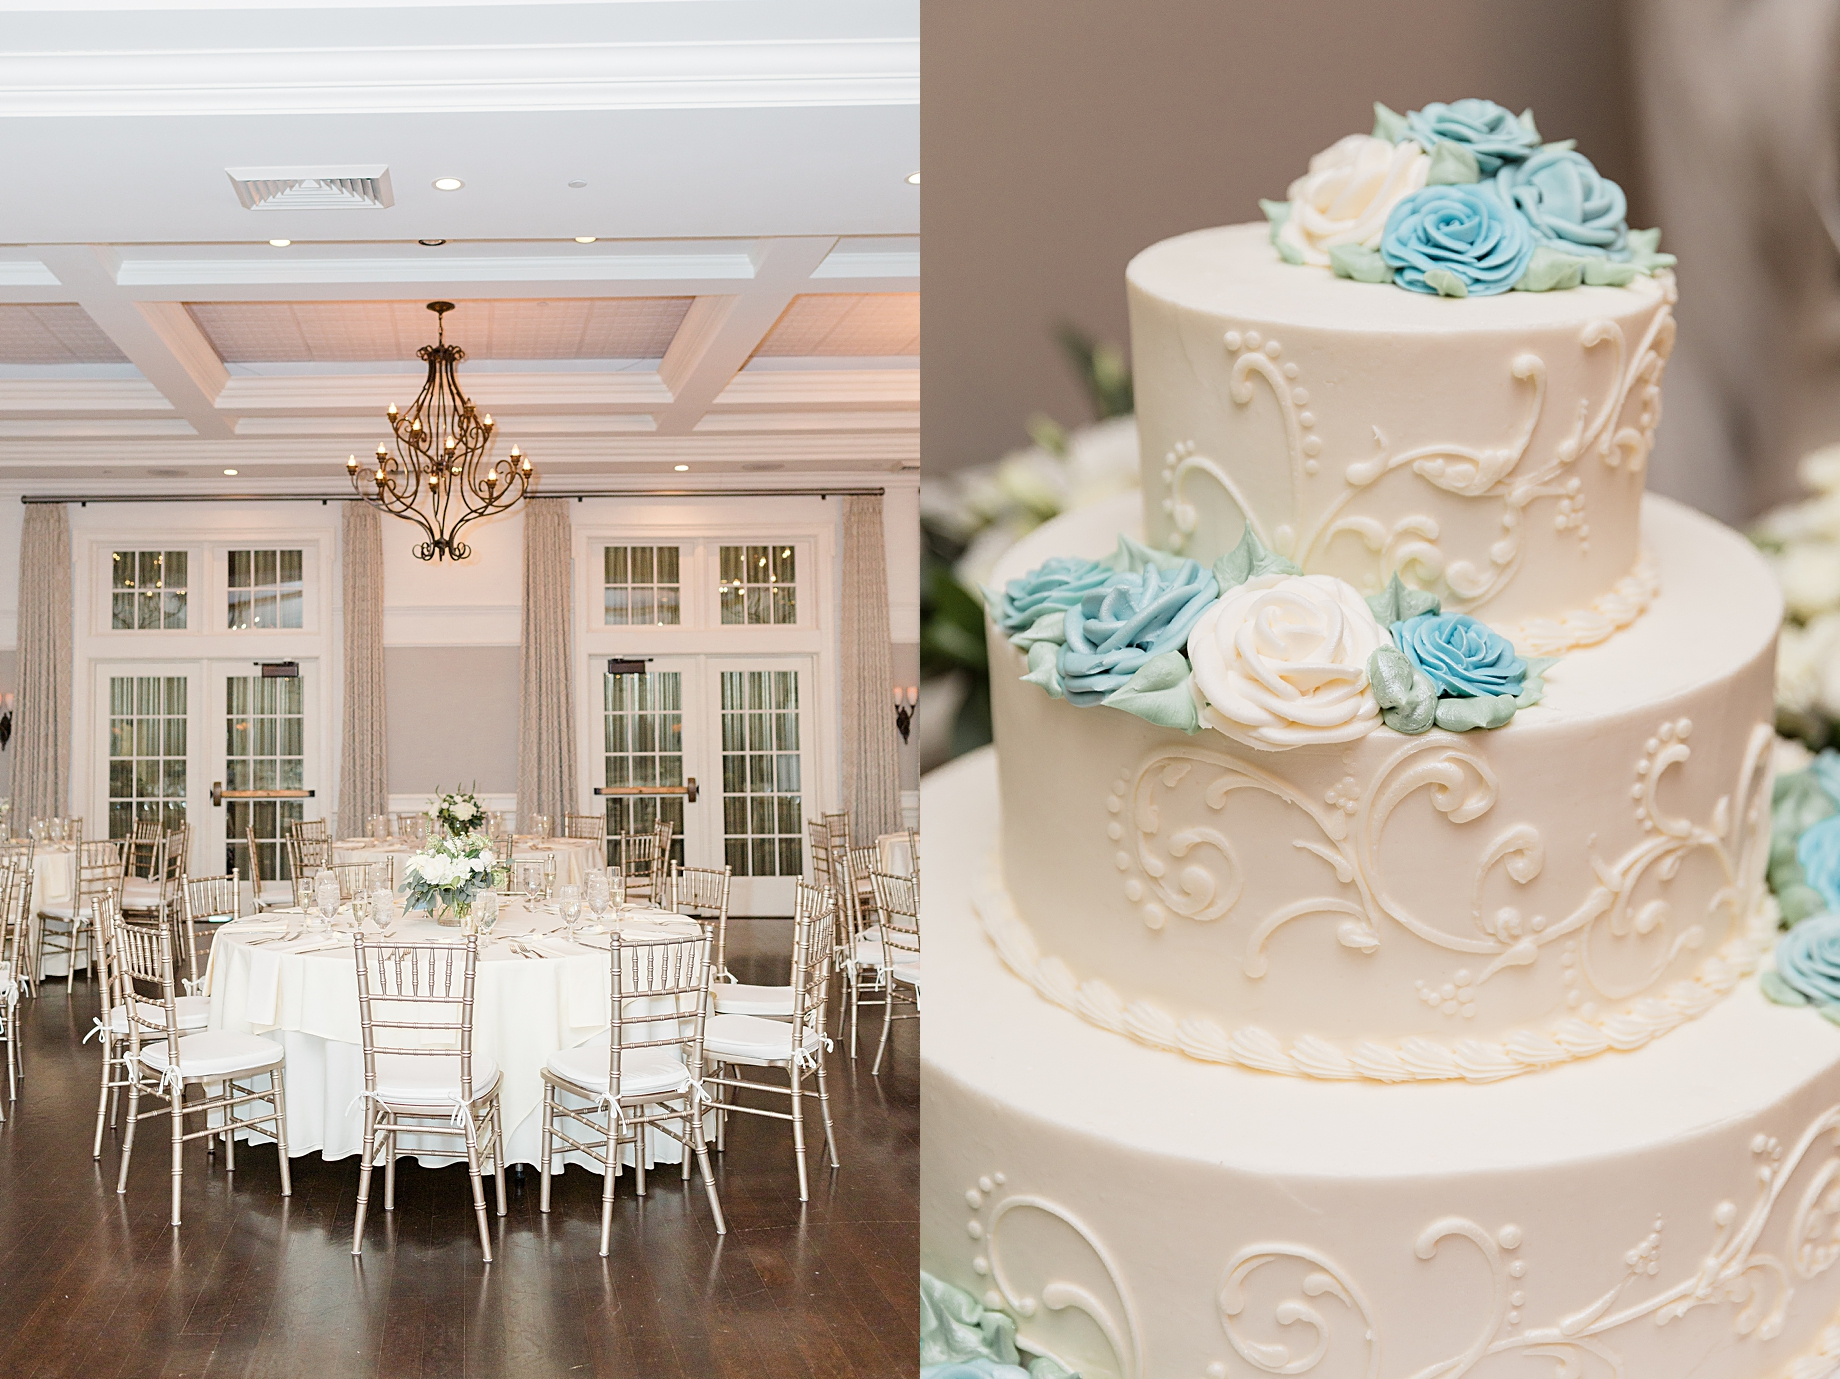 French Creek Golf Club Wedding Reception | Cake by Baker's of Buffington